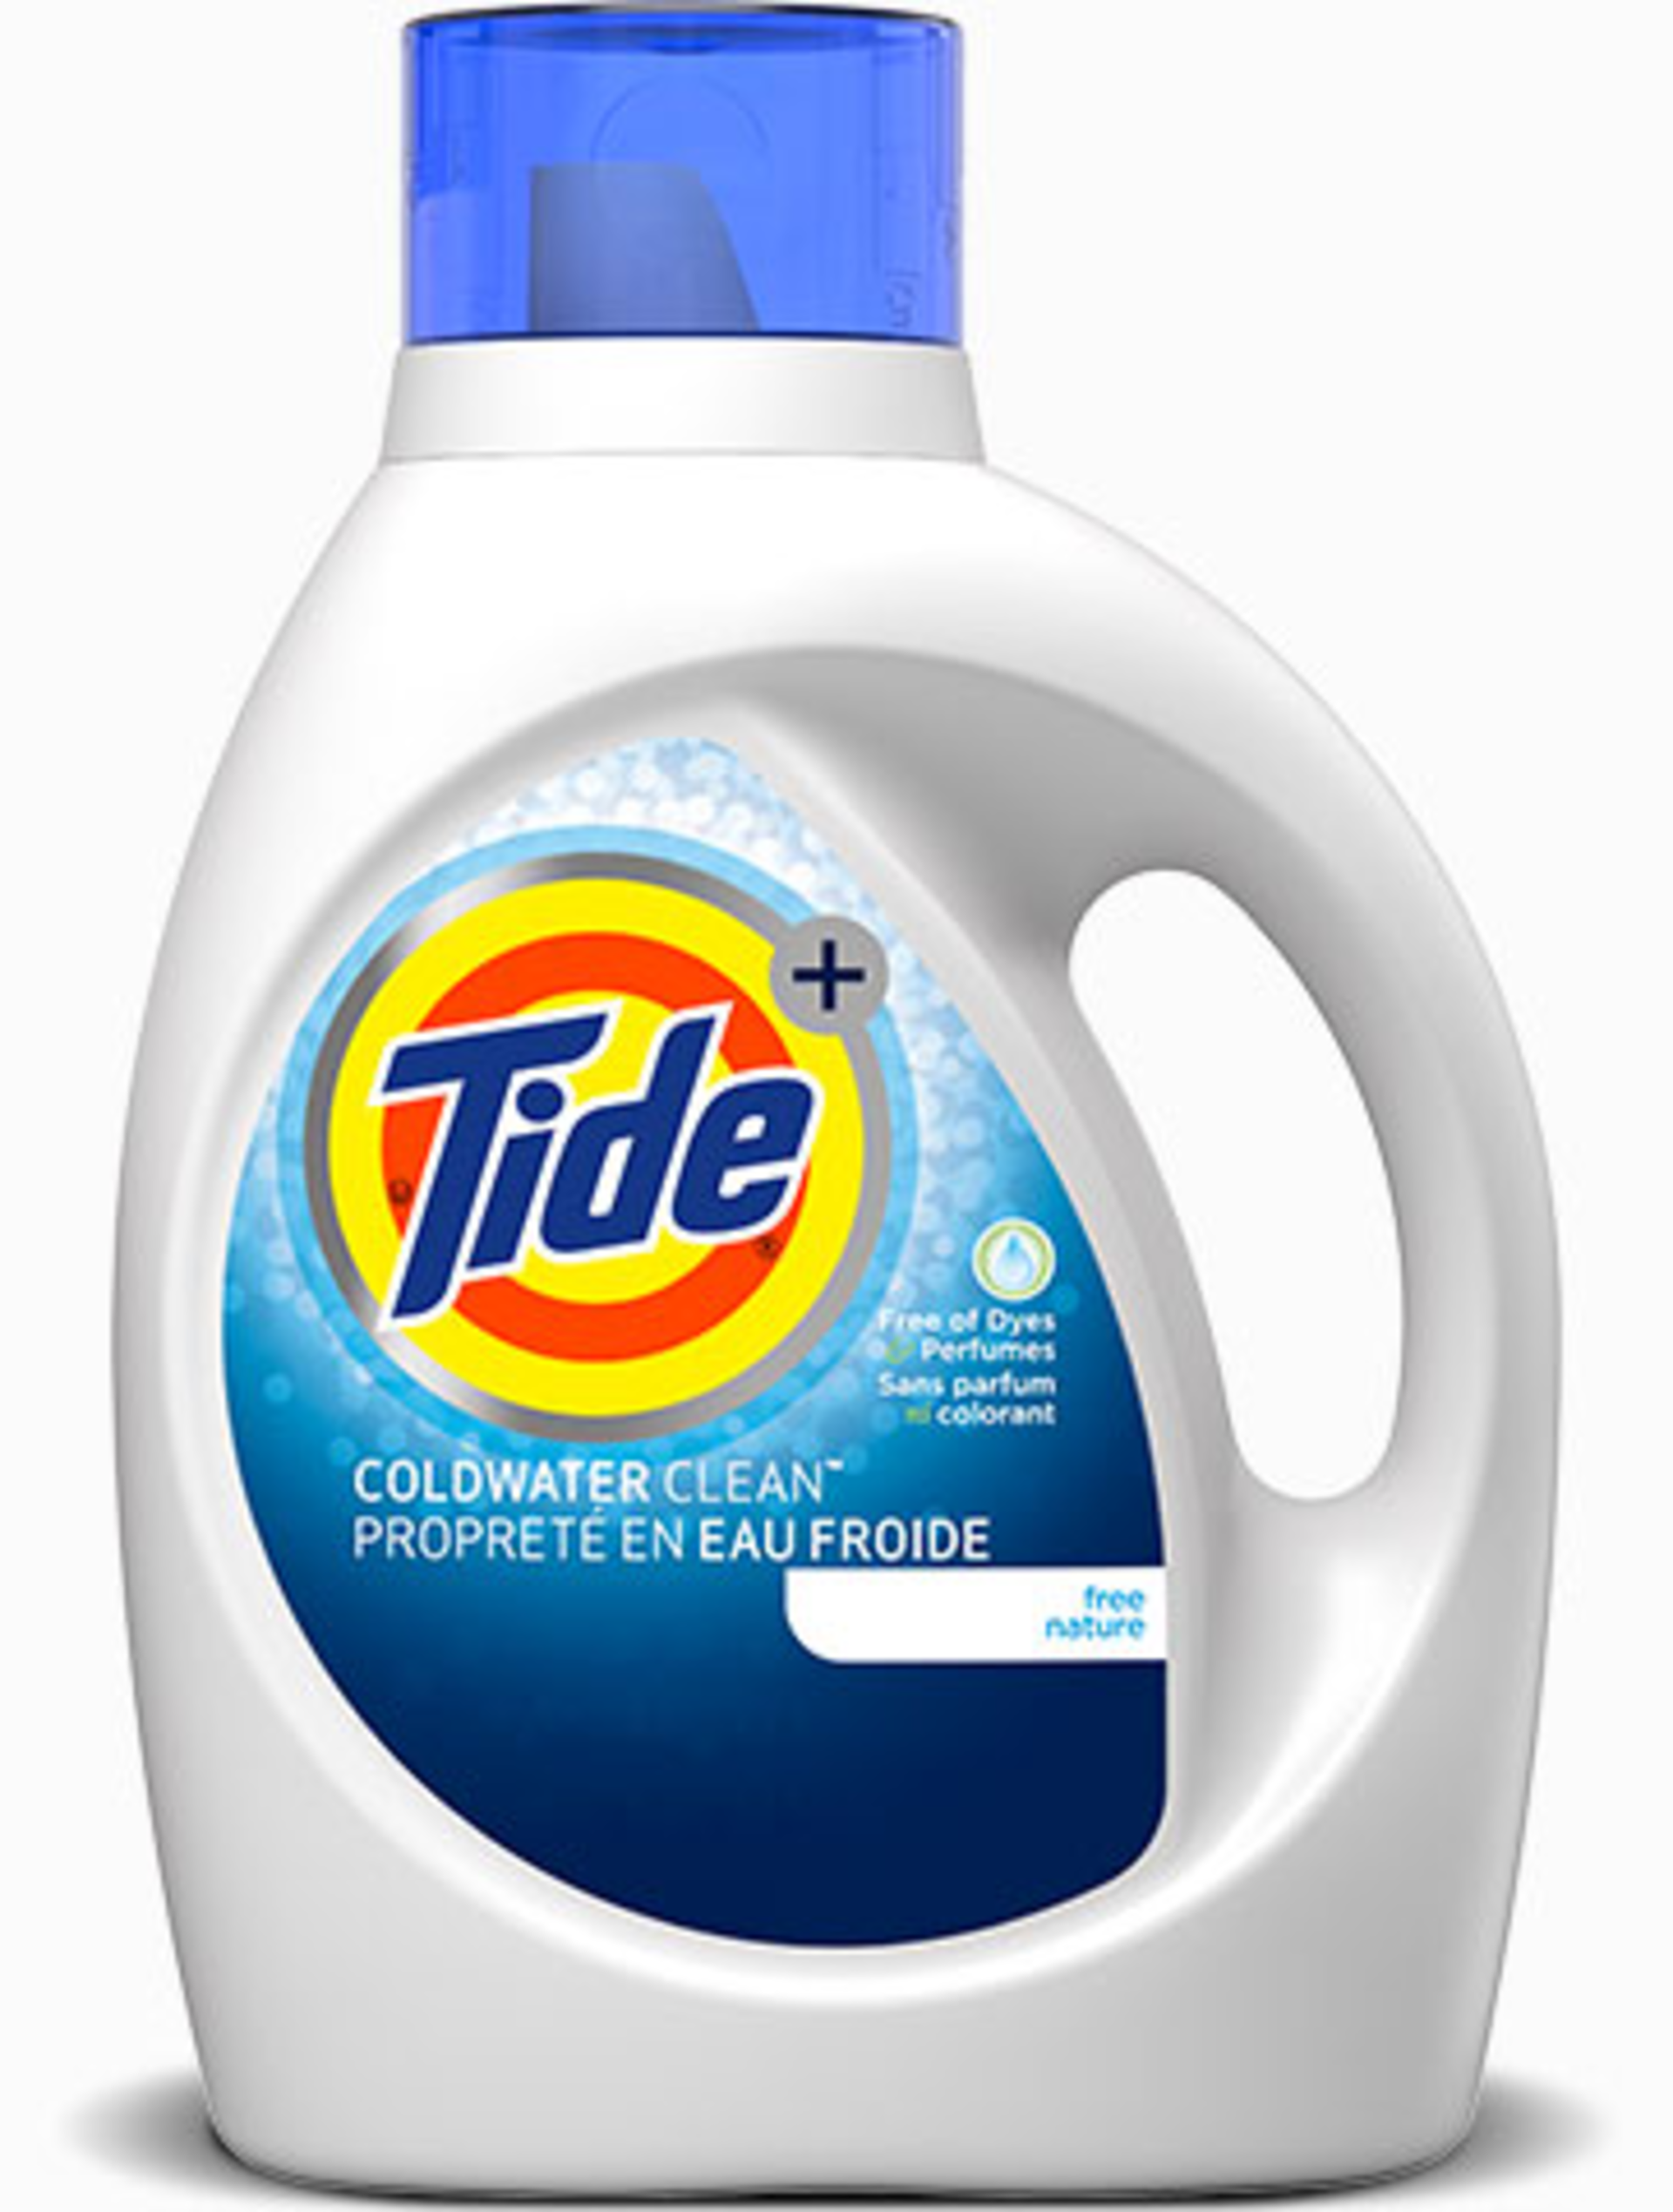 Tide Coldwater Clean Free HE Liquid Laundry Detergent